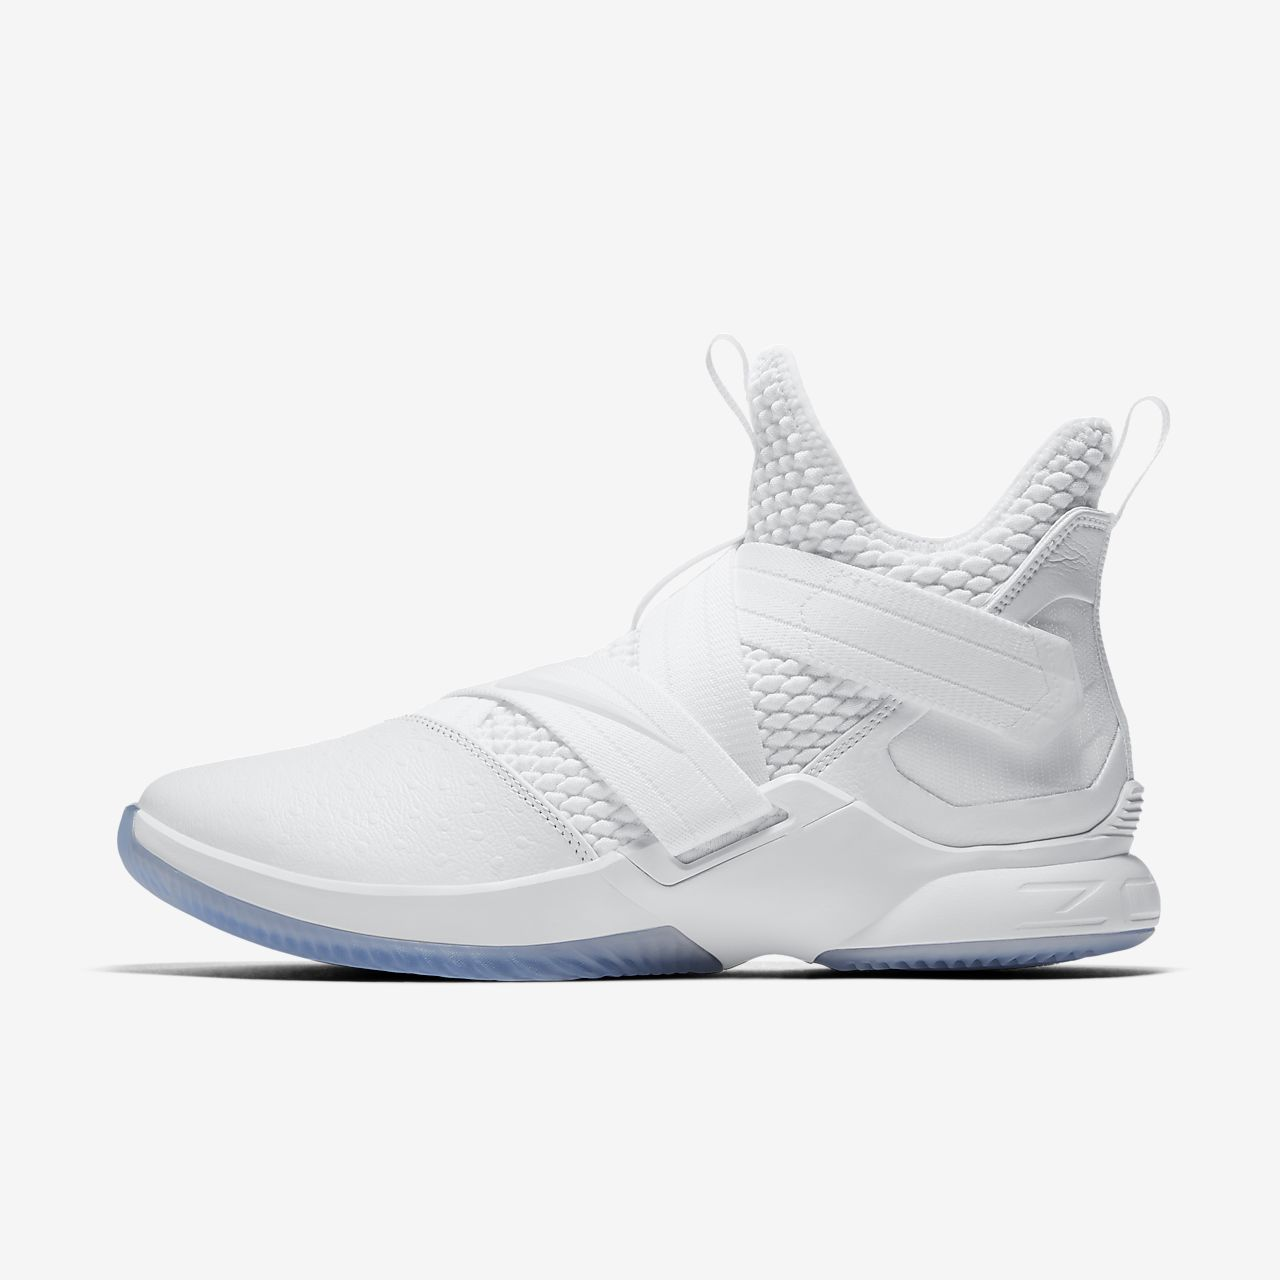 9037b7f774d LeBron Soldier 12 SFG Basketball Shoe. Nike.com GB